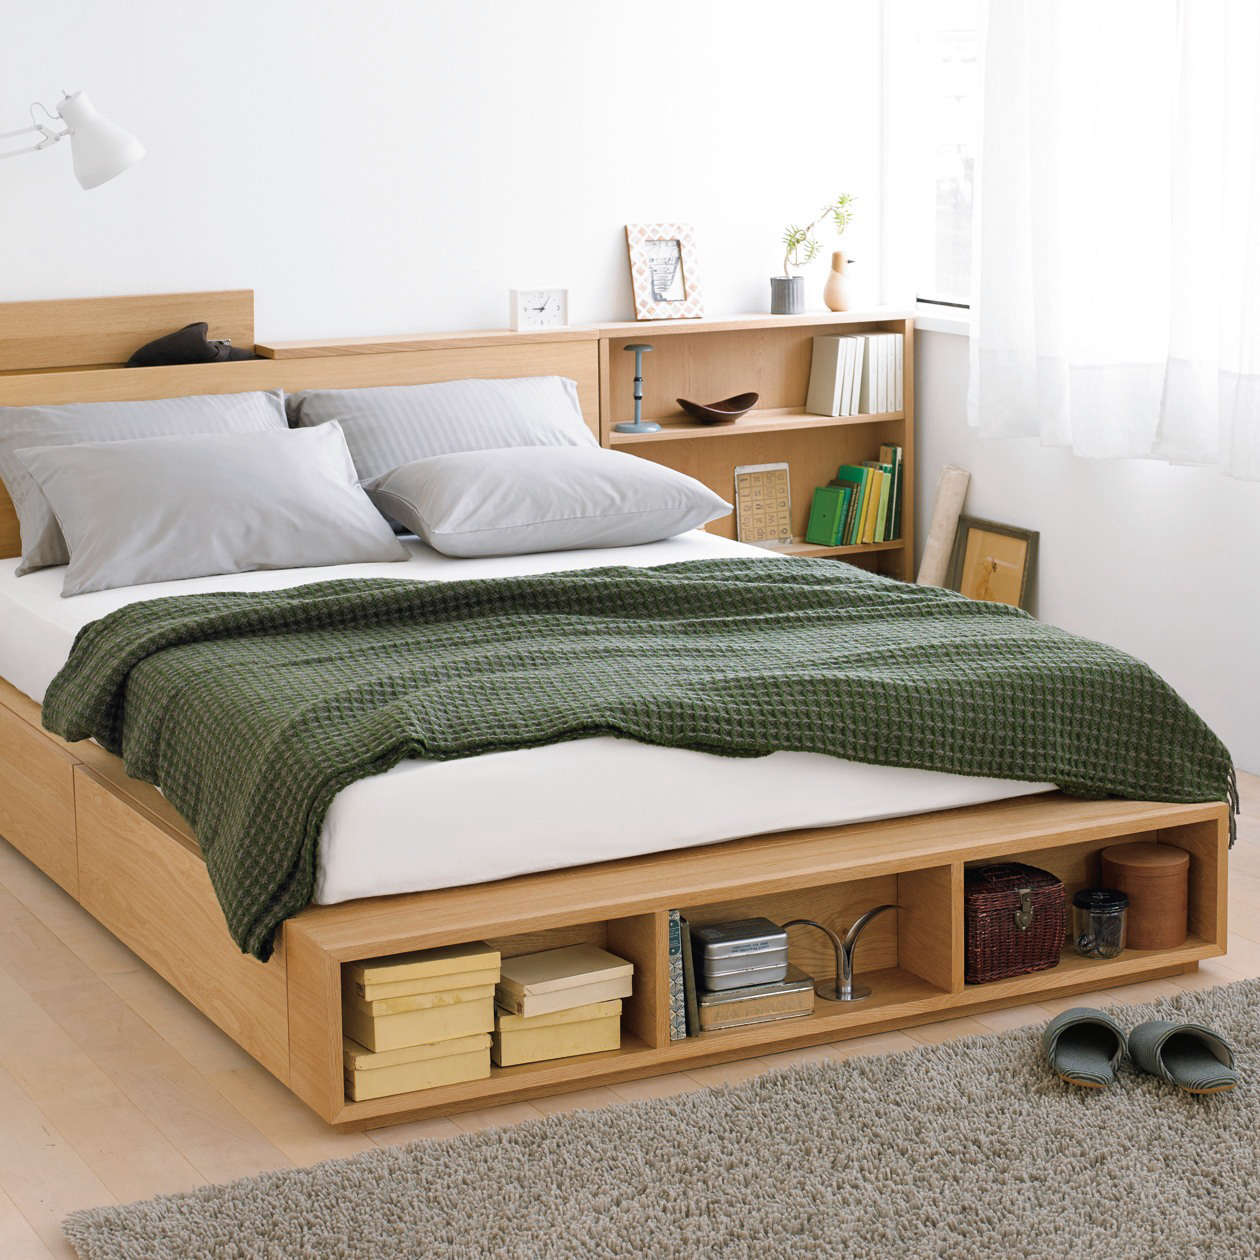 10 Easy Pieces Storage Beds Remodelista